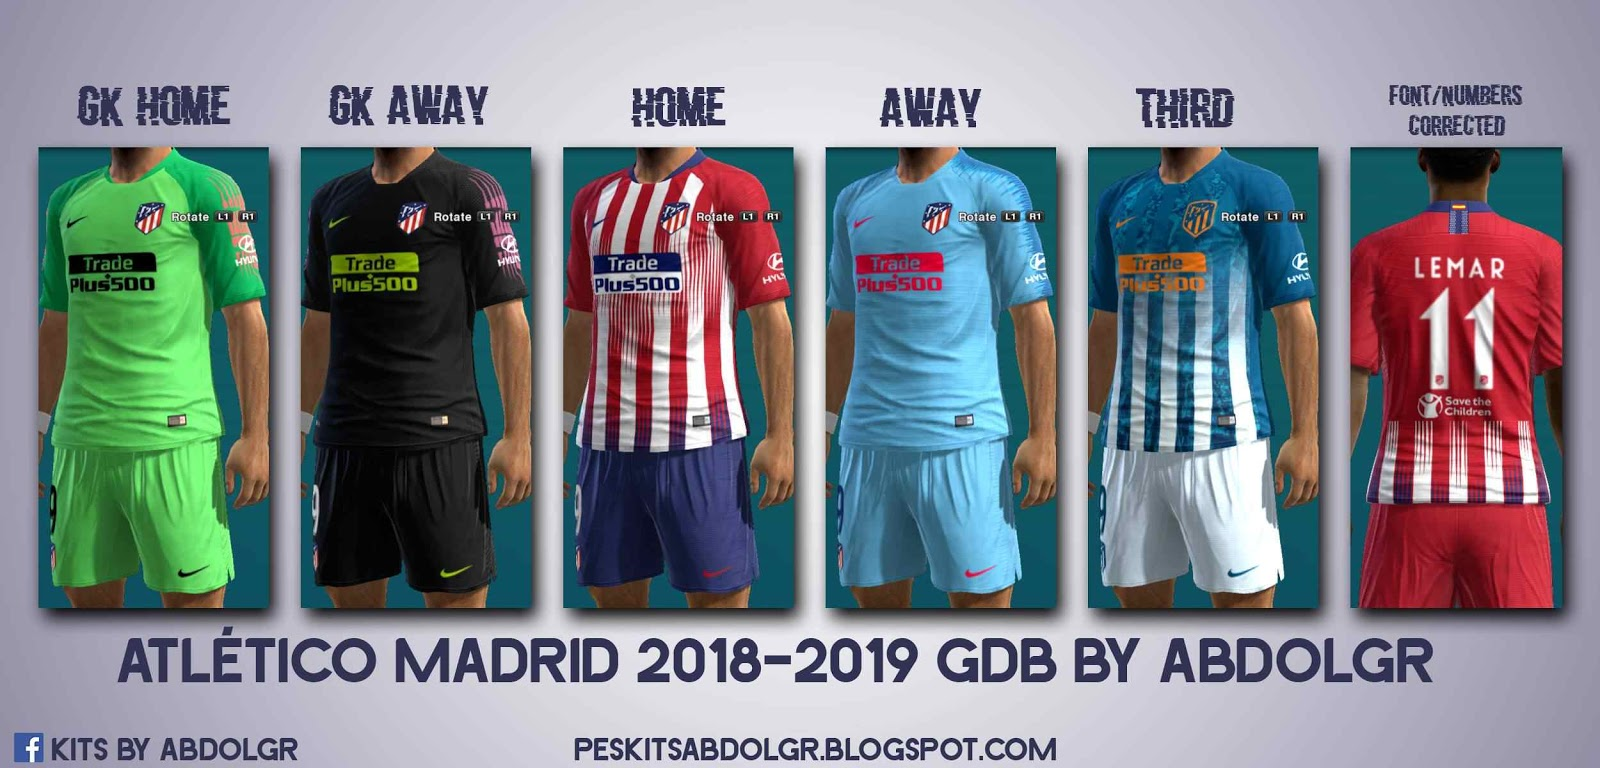 presenting reasonable price save up to 80% ultigamerz: PES 2013 Atlético Madrid 2018-19 Full GDB Kits